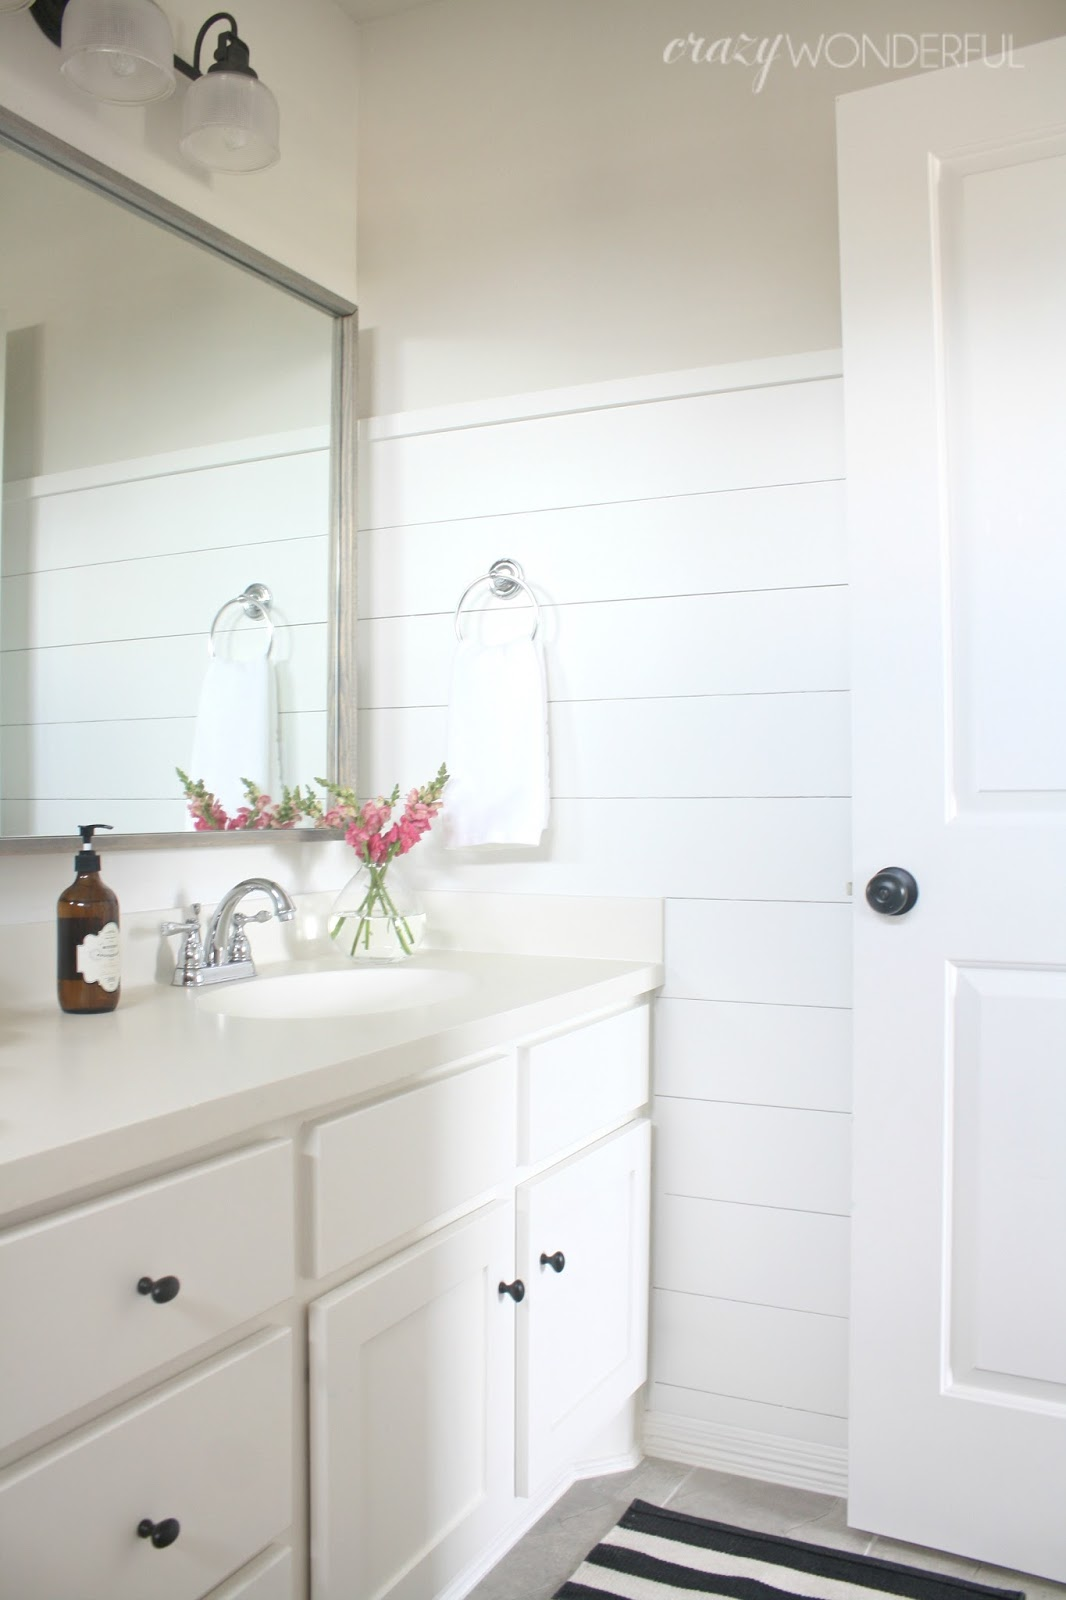 Black mirrored bathroom vanity - Stay Tuned For The Shower Curtain Diy Tutorial Here It Will Open